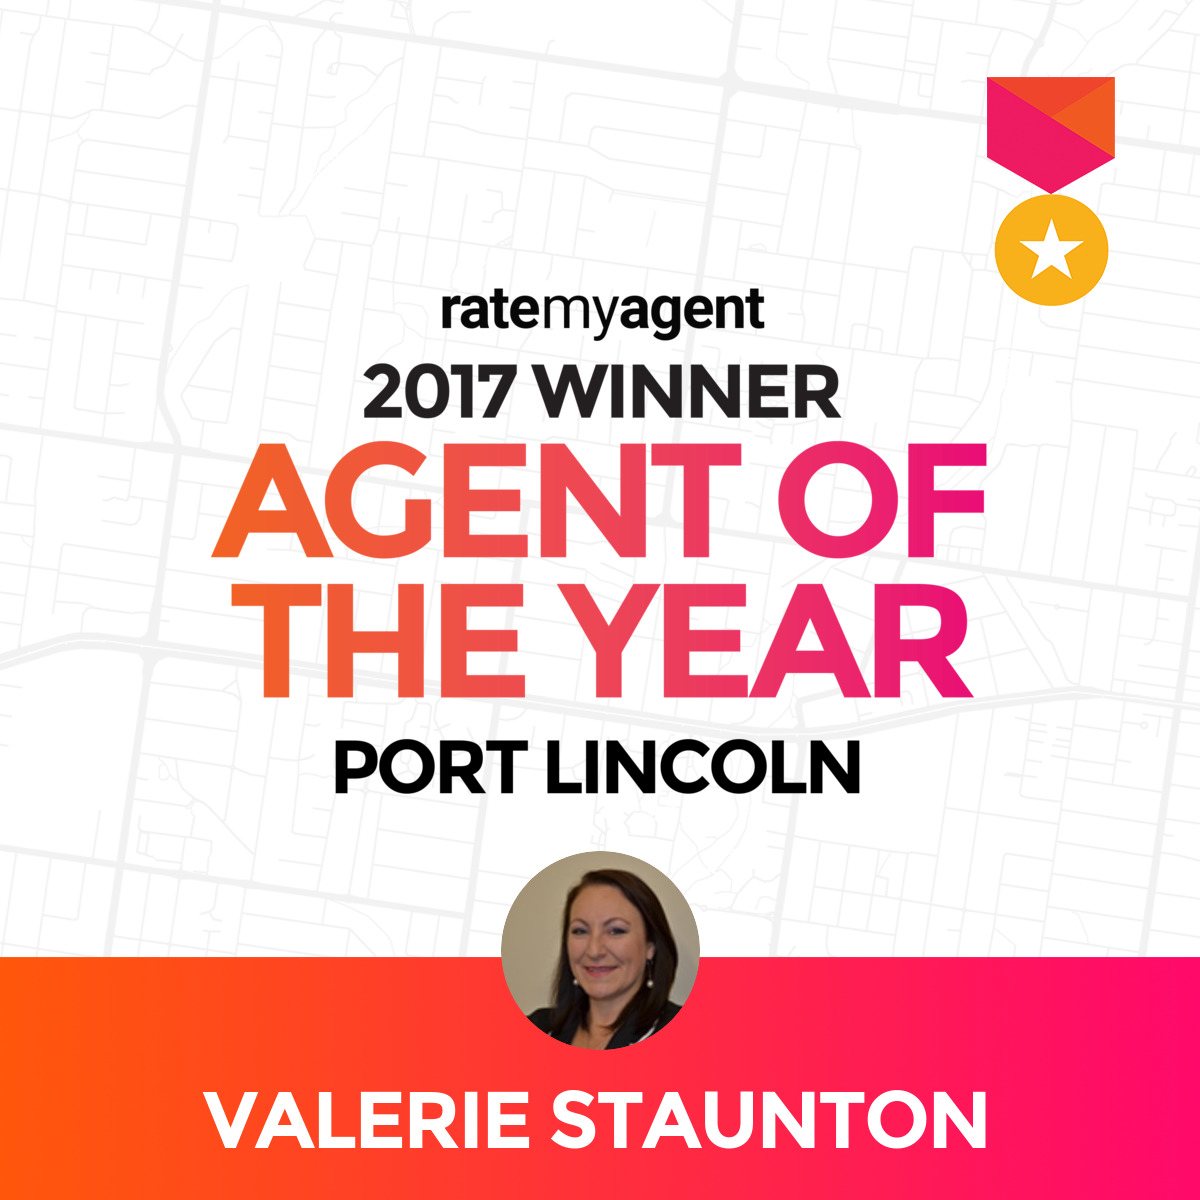 RateMyAgent Agent of the year 2017 Port Lincoln